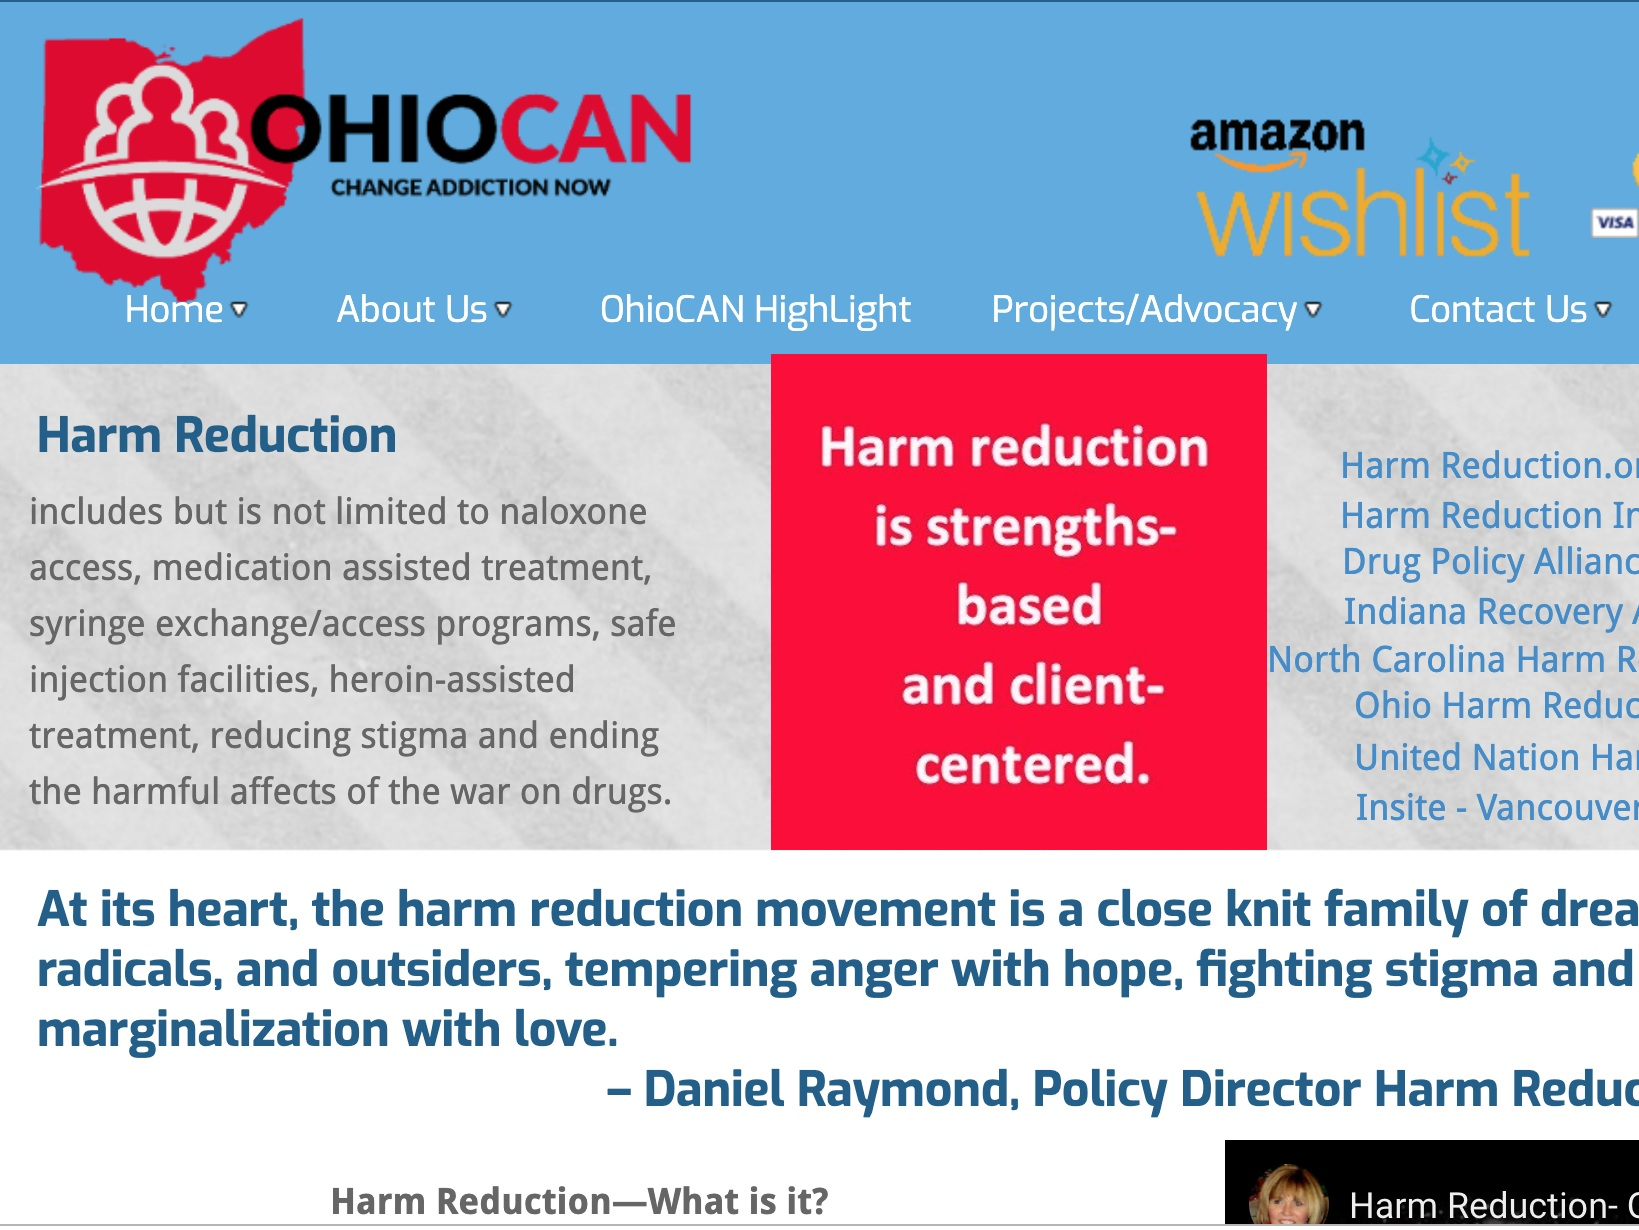 OhioCan - OhioCAN's mission is to embrace, educate, and empower those whose lives have been impacted by substance use. OhioCAN takes a harm reduction approach while working with families and friends of people who use drugs.